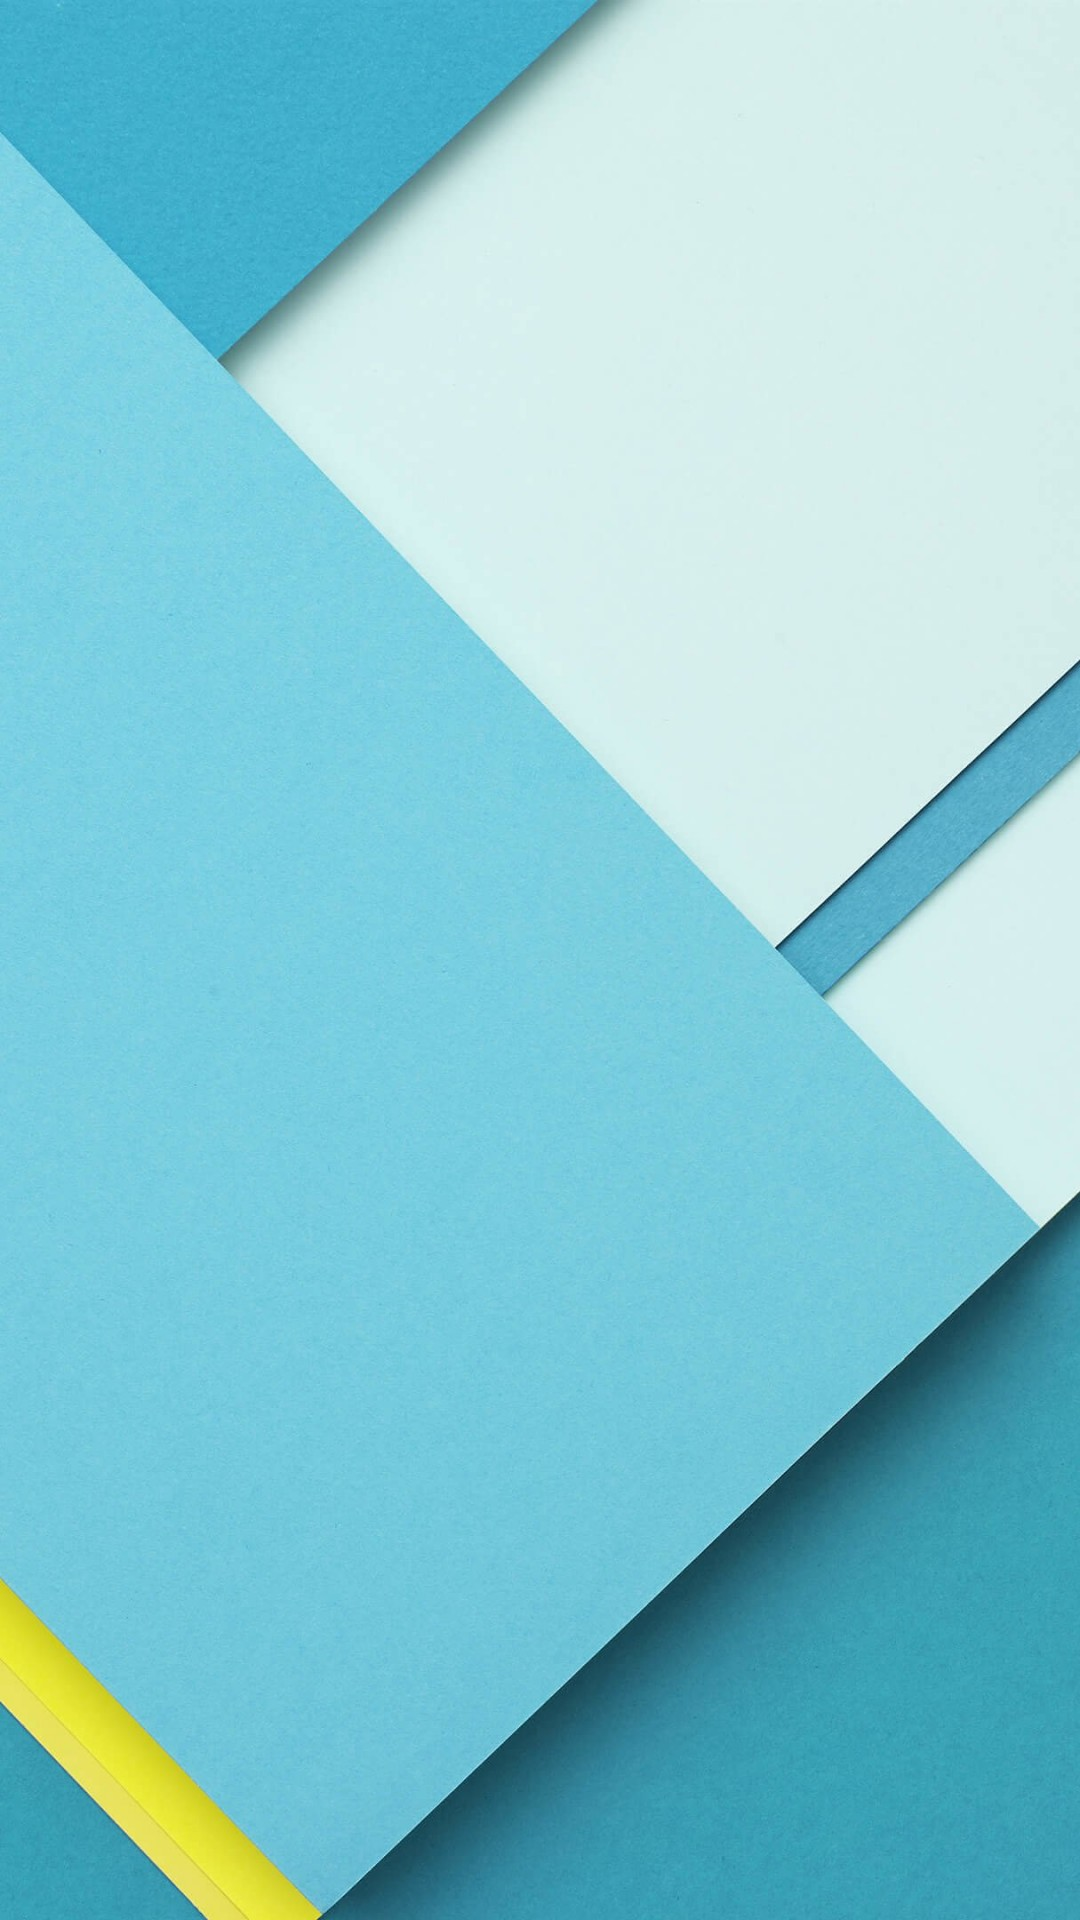 Google Material Design Wallpaper for Motorola Moto X